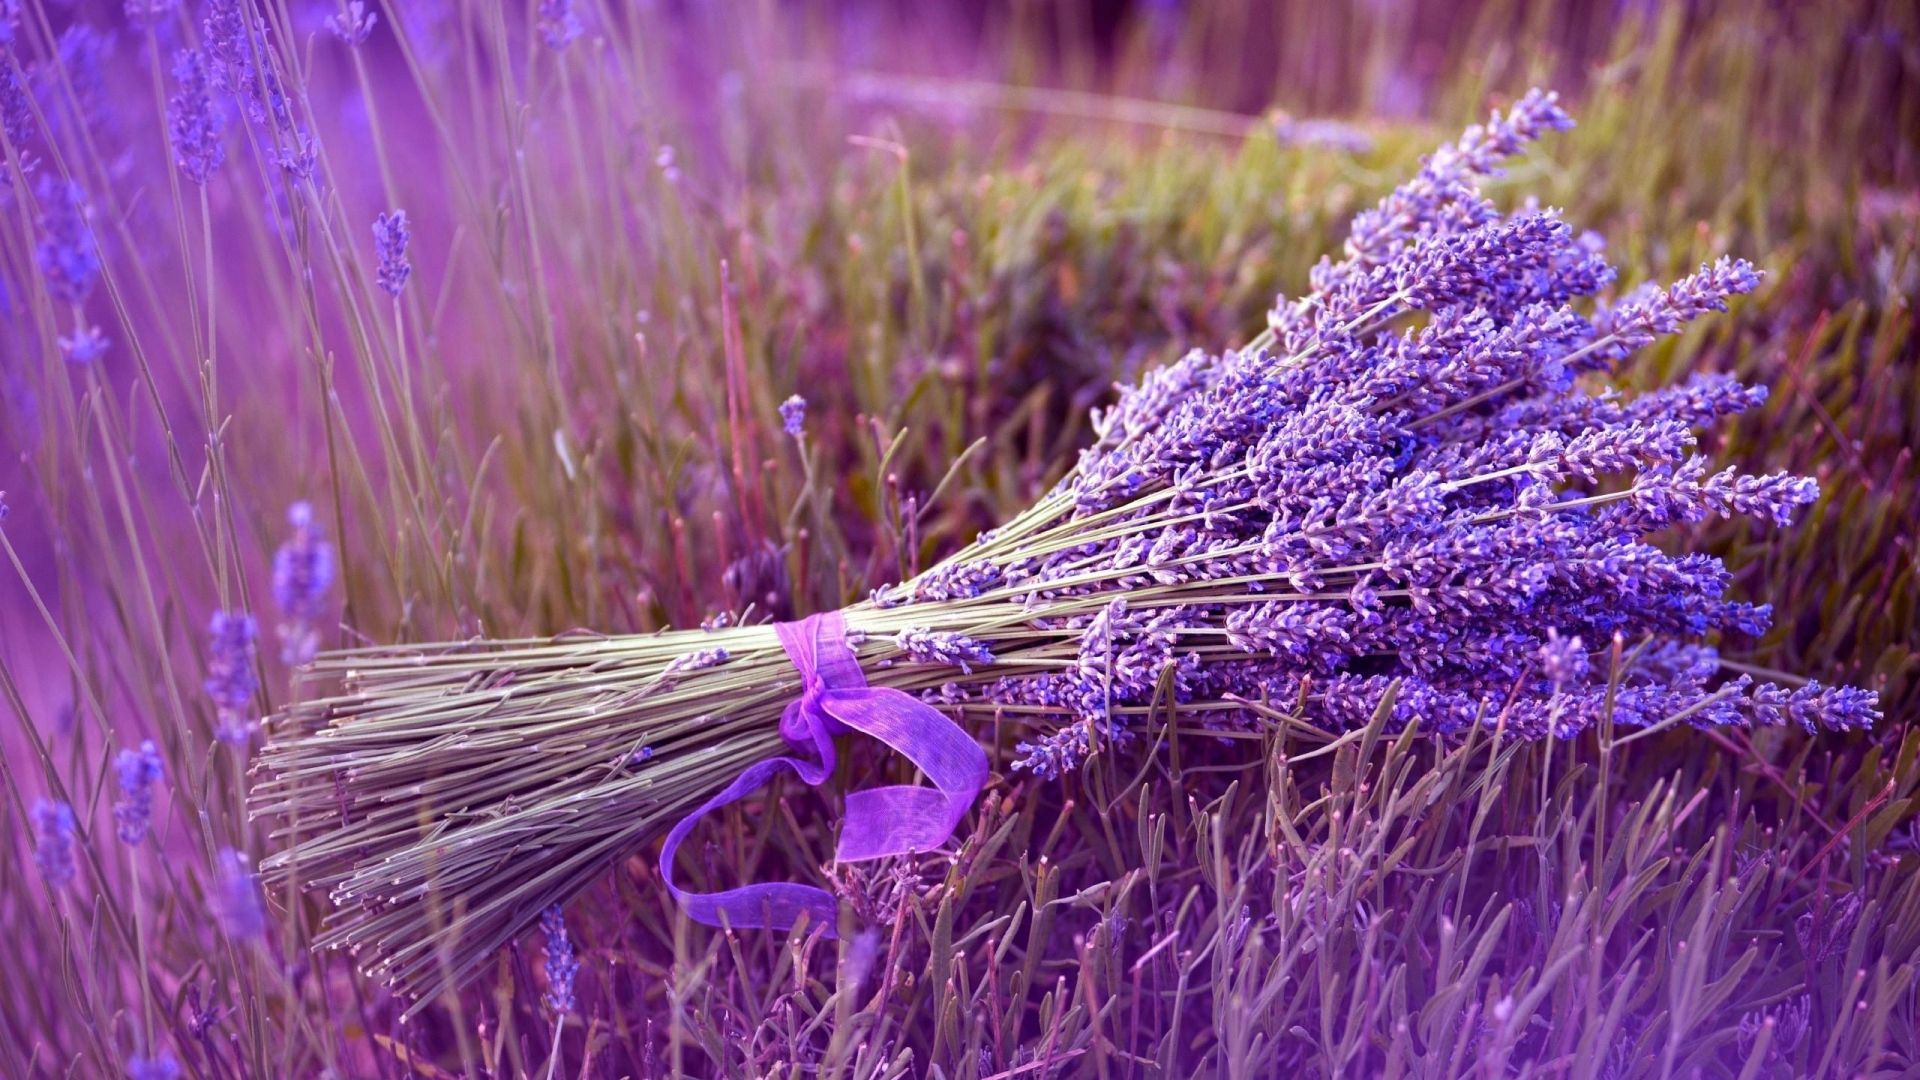 Pin By Linda Franceschi On Visual Inspiration To Create Soaps Lavender Plant Care Growing Lavender Lavender Plant